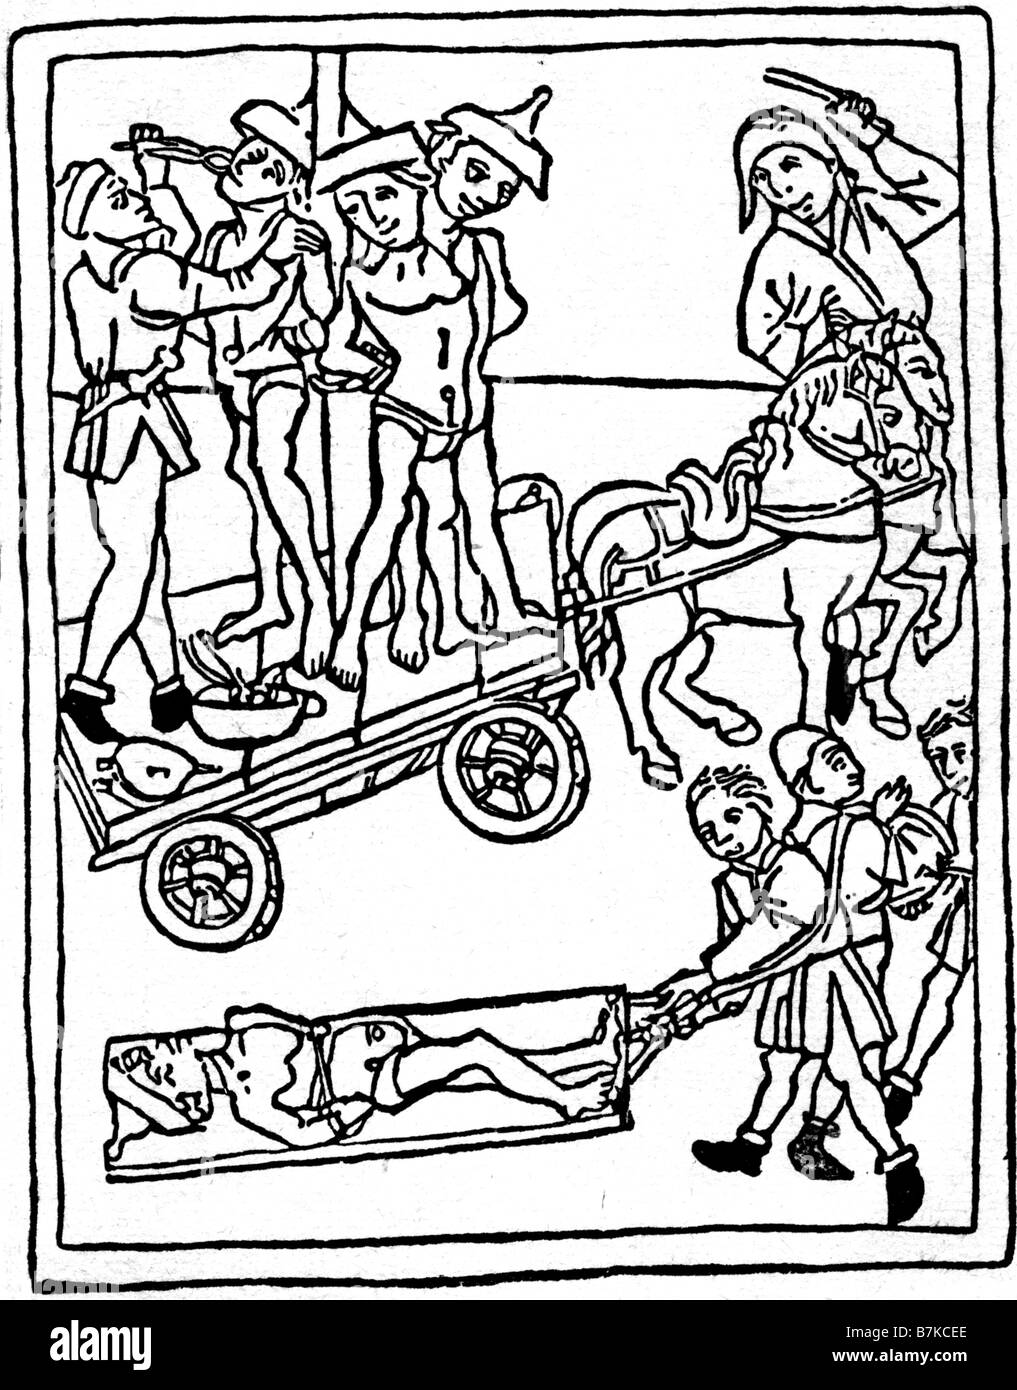 SPANISH INQUISITION 1475 woodcut showing Jews being tortured ay the Inquisiion in Granada following accusation of - Stock Image